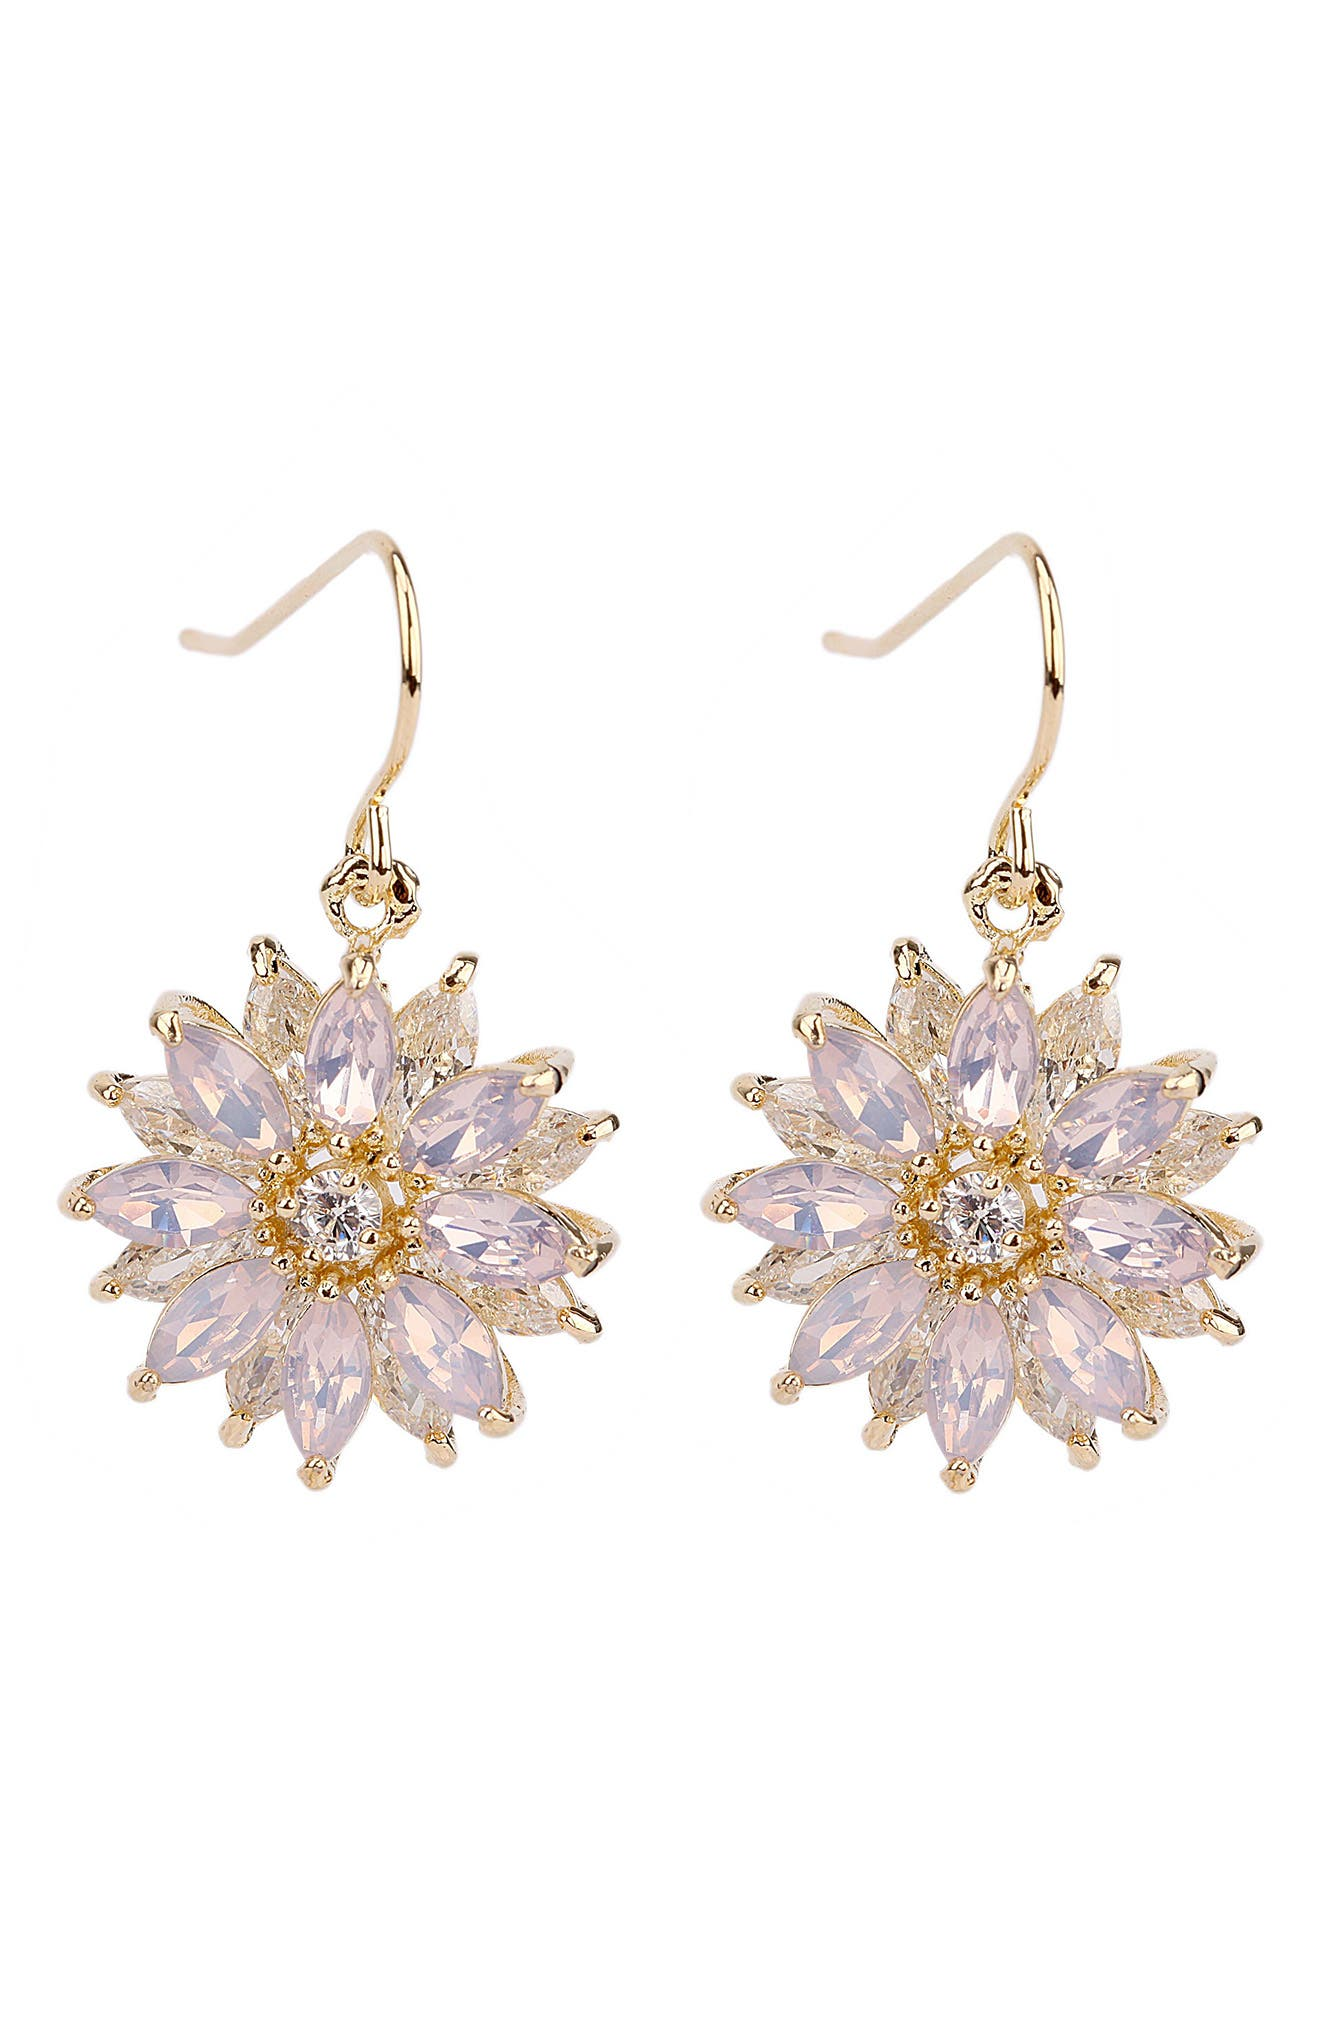 Layered Floral Drop Earrings,                             Main thumbnail 1, color,                             Pink Opal/ Gold